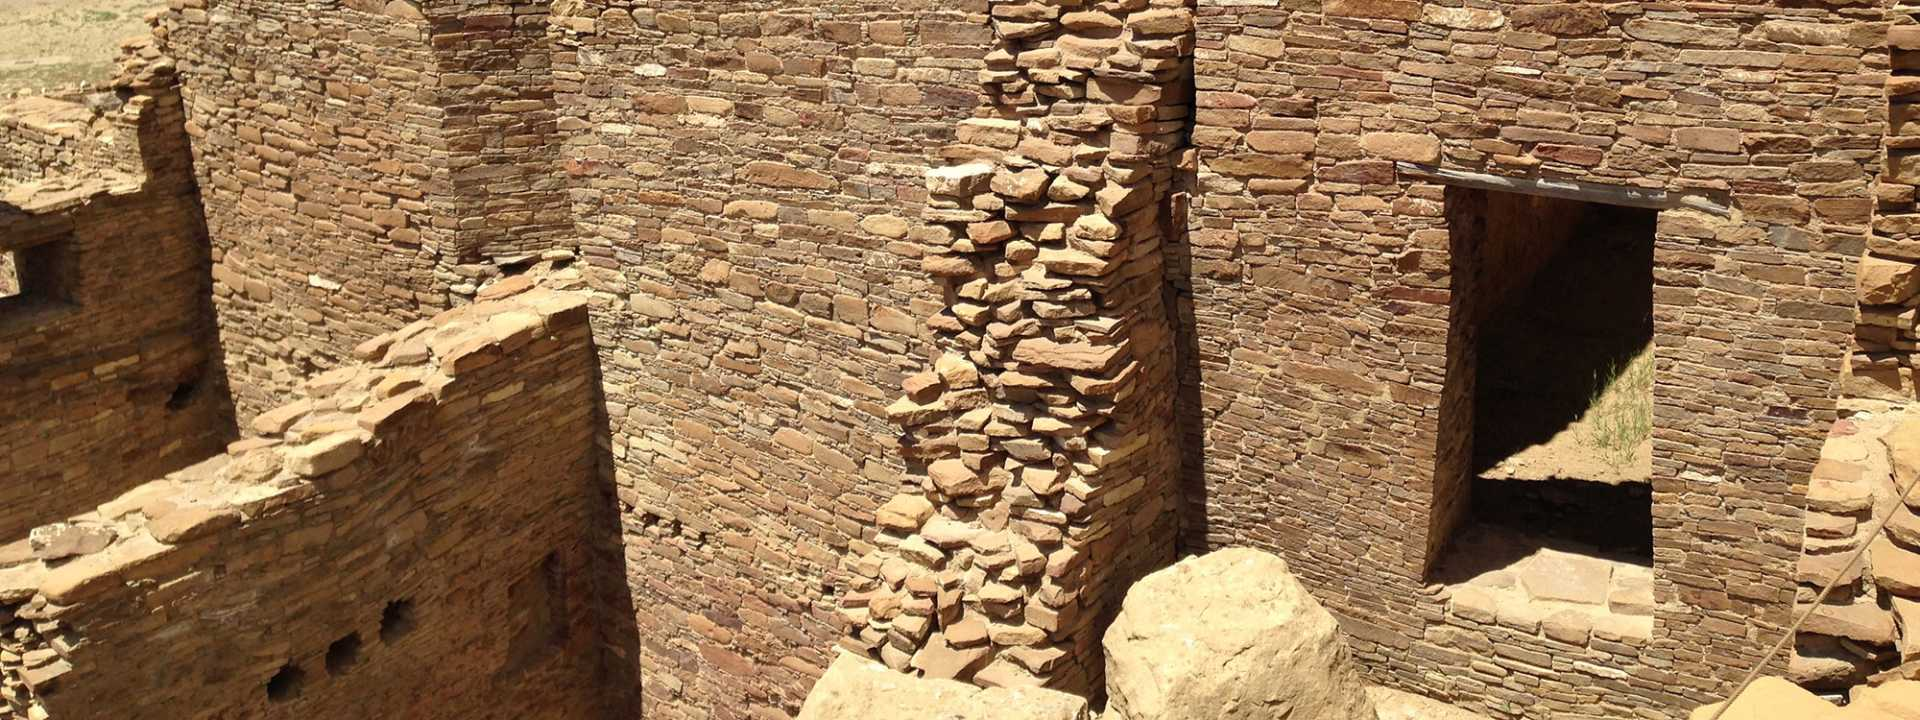 A closer look at the ancient structures found at Chaco Canyon in New Mexico.